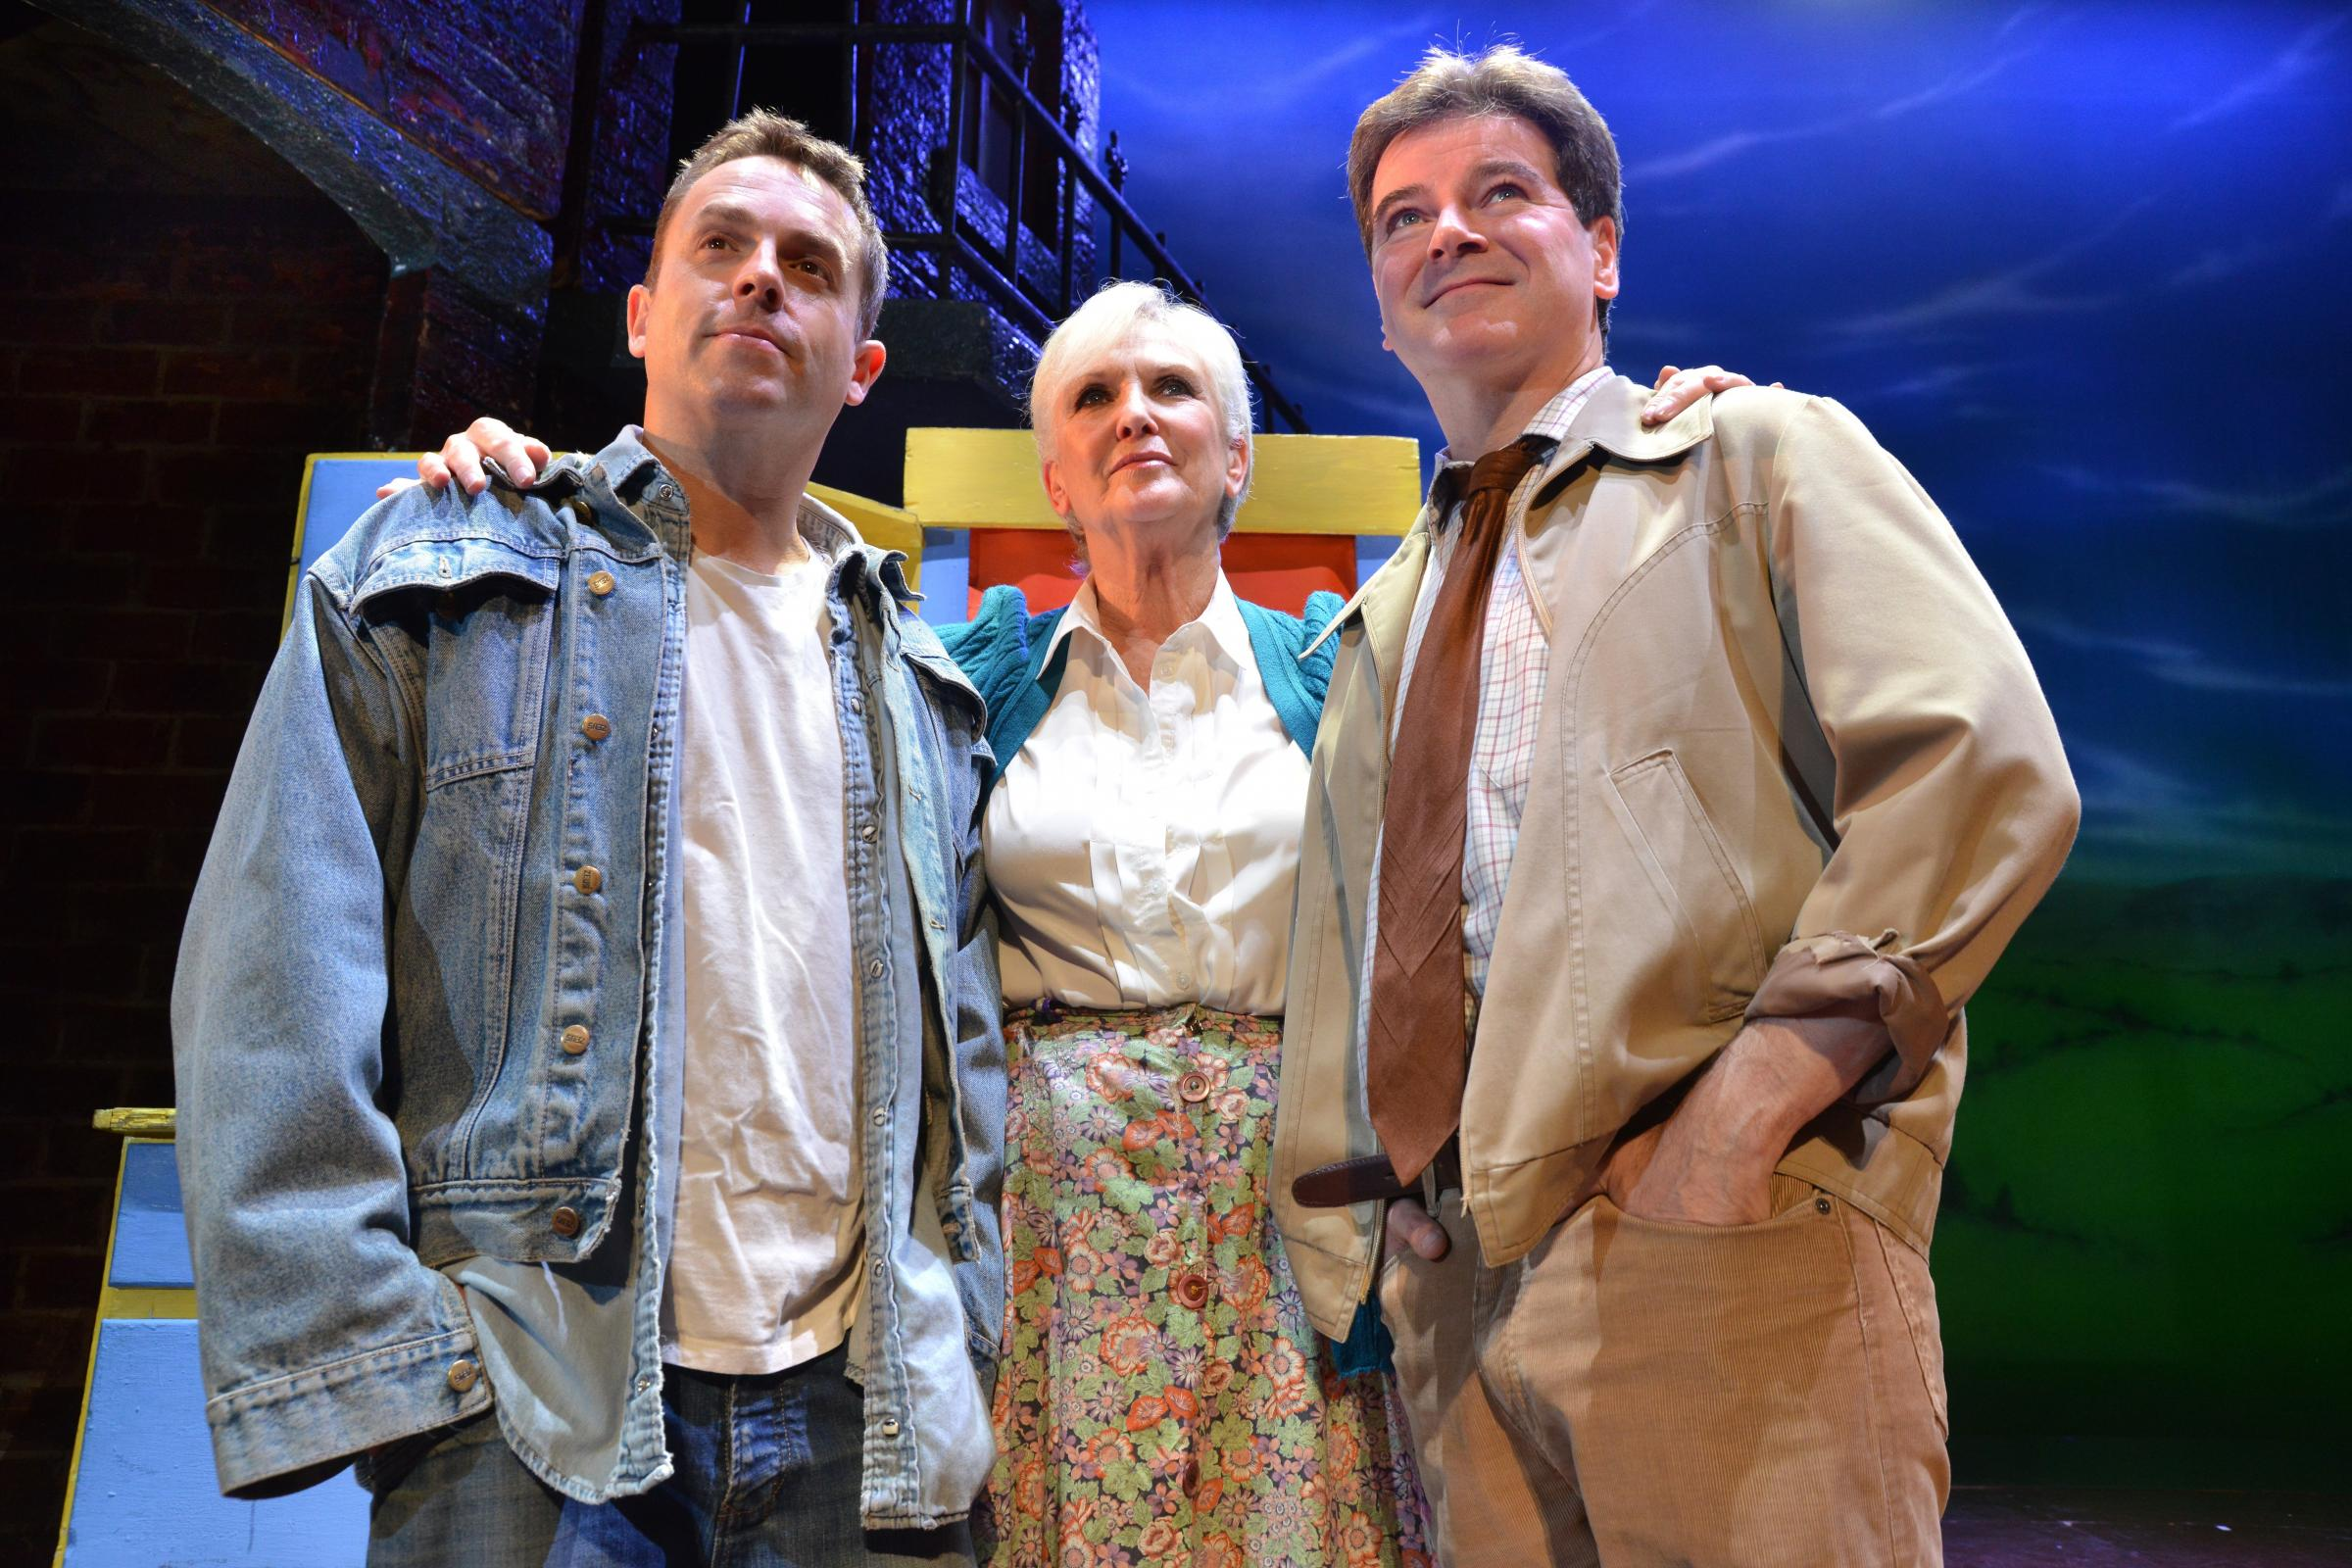 Sean Jones, Lynn Paul, and Mark Hutchinson, the cast of Blood Brothers at the Alhambra